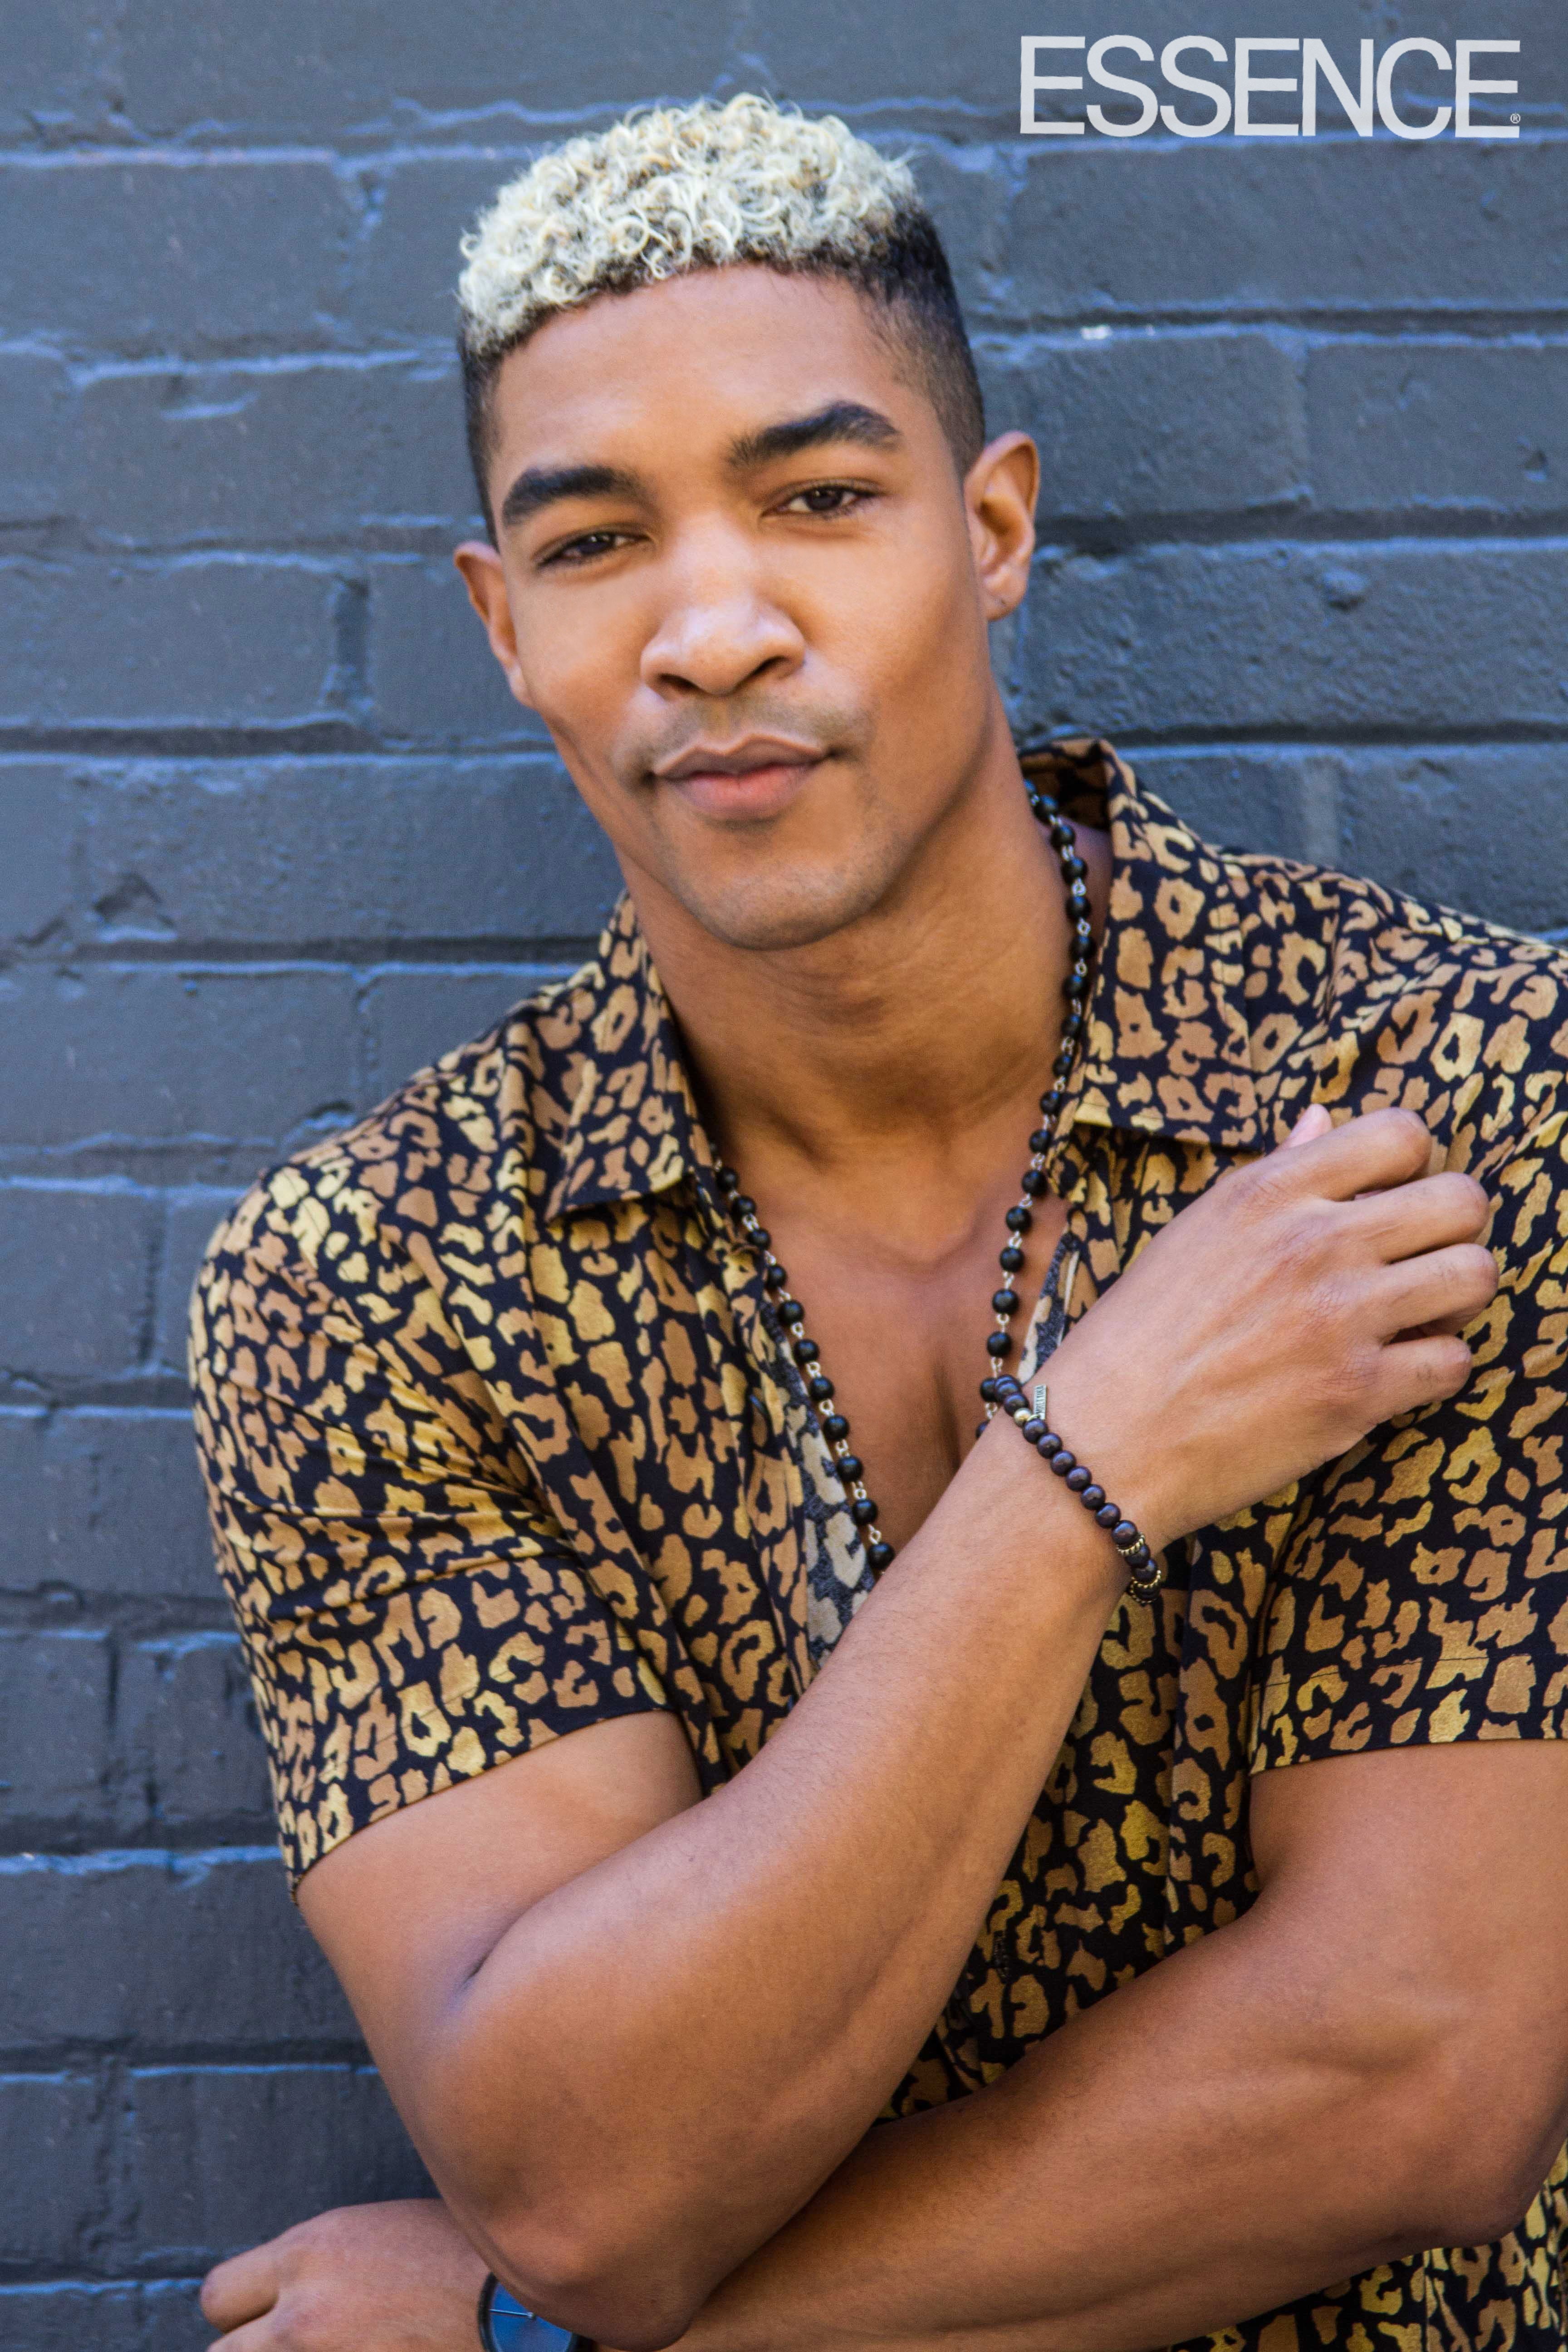 Male Supermodel Wendell Lissimore Tackles The DiversityCrisis In Fashion: 'We're Conditioned To Play Sports, Do Music Or Be In The Streets'